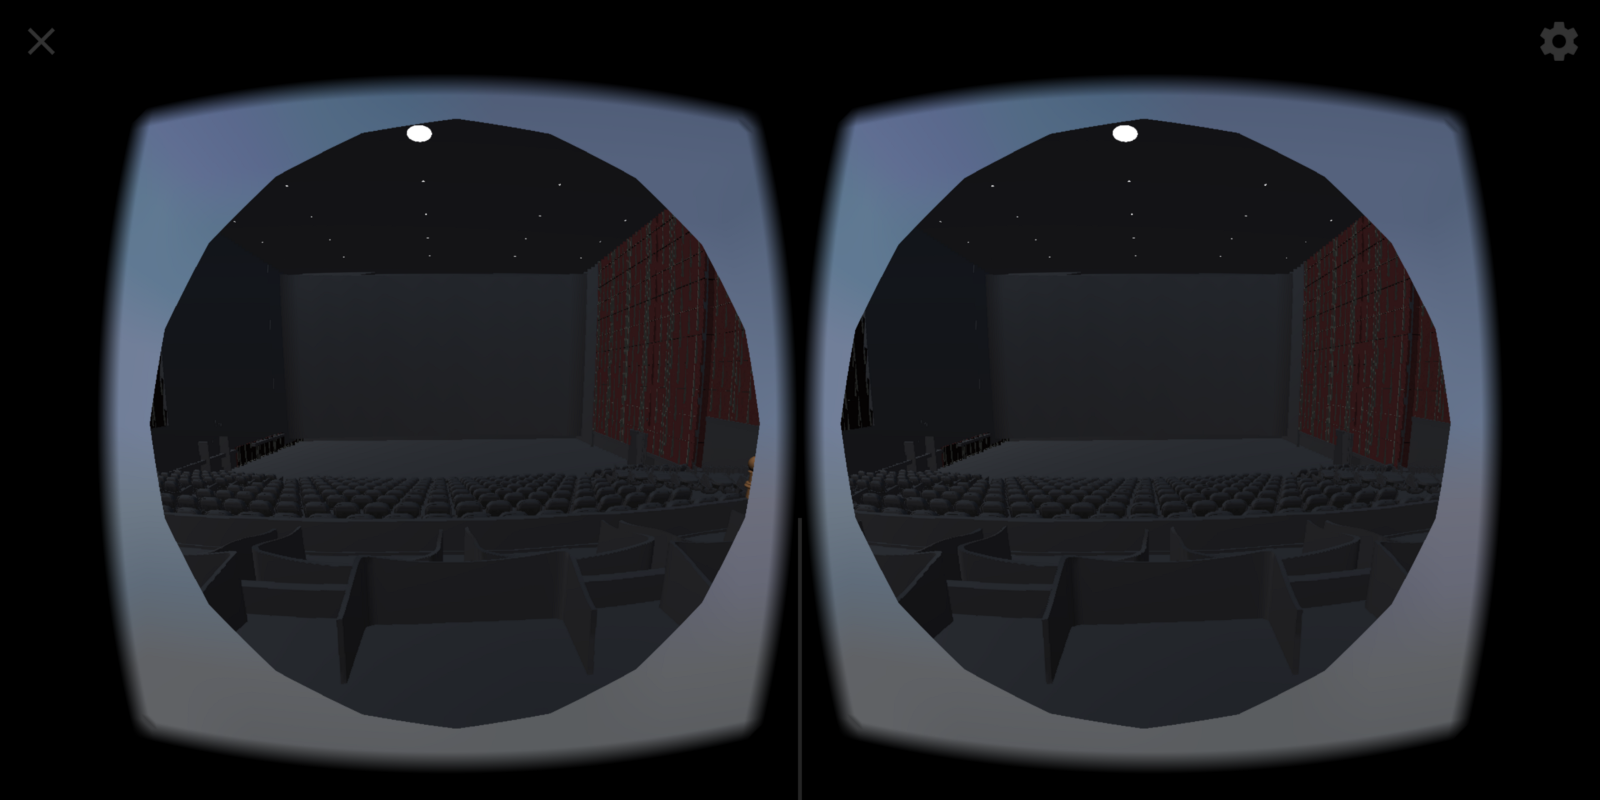 Learn about professional VR Cameras… through a VR app?